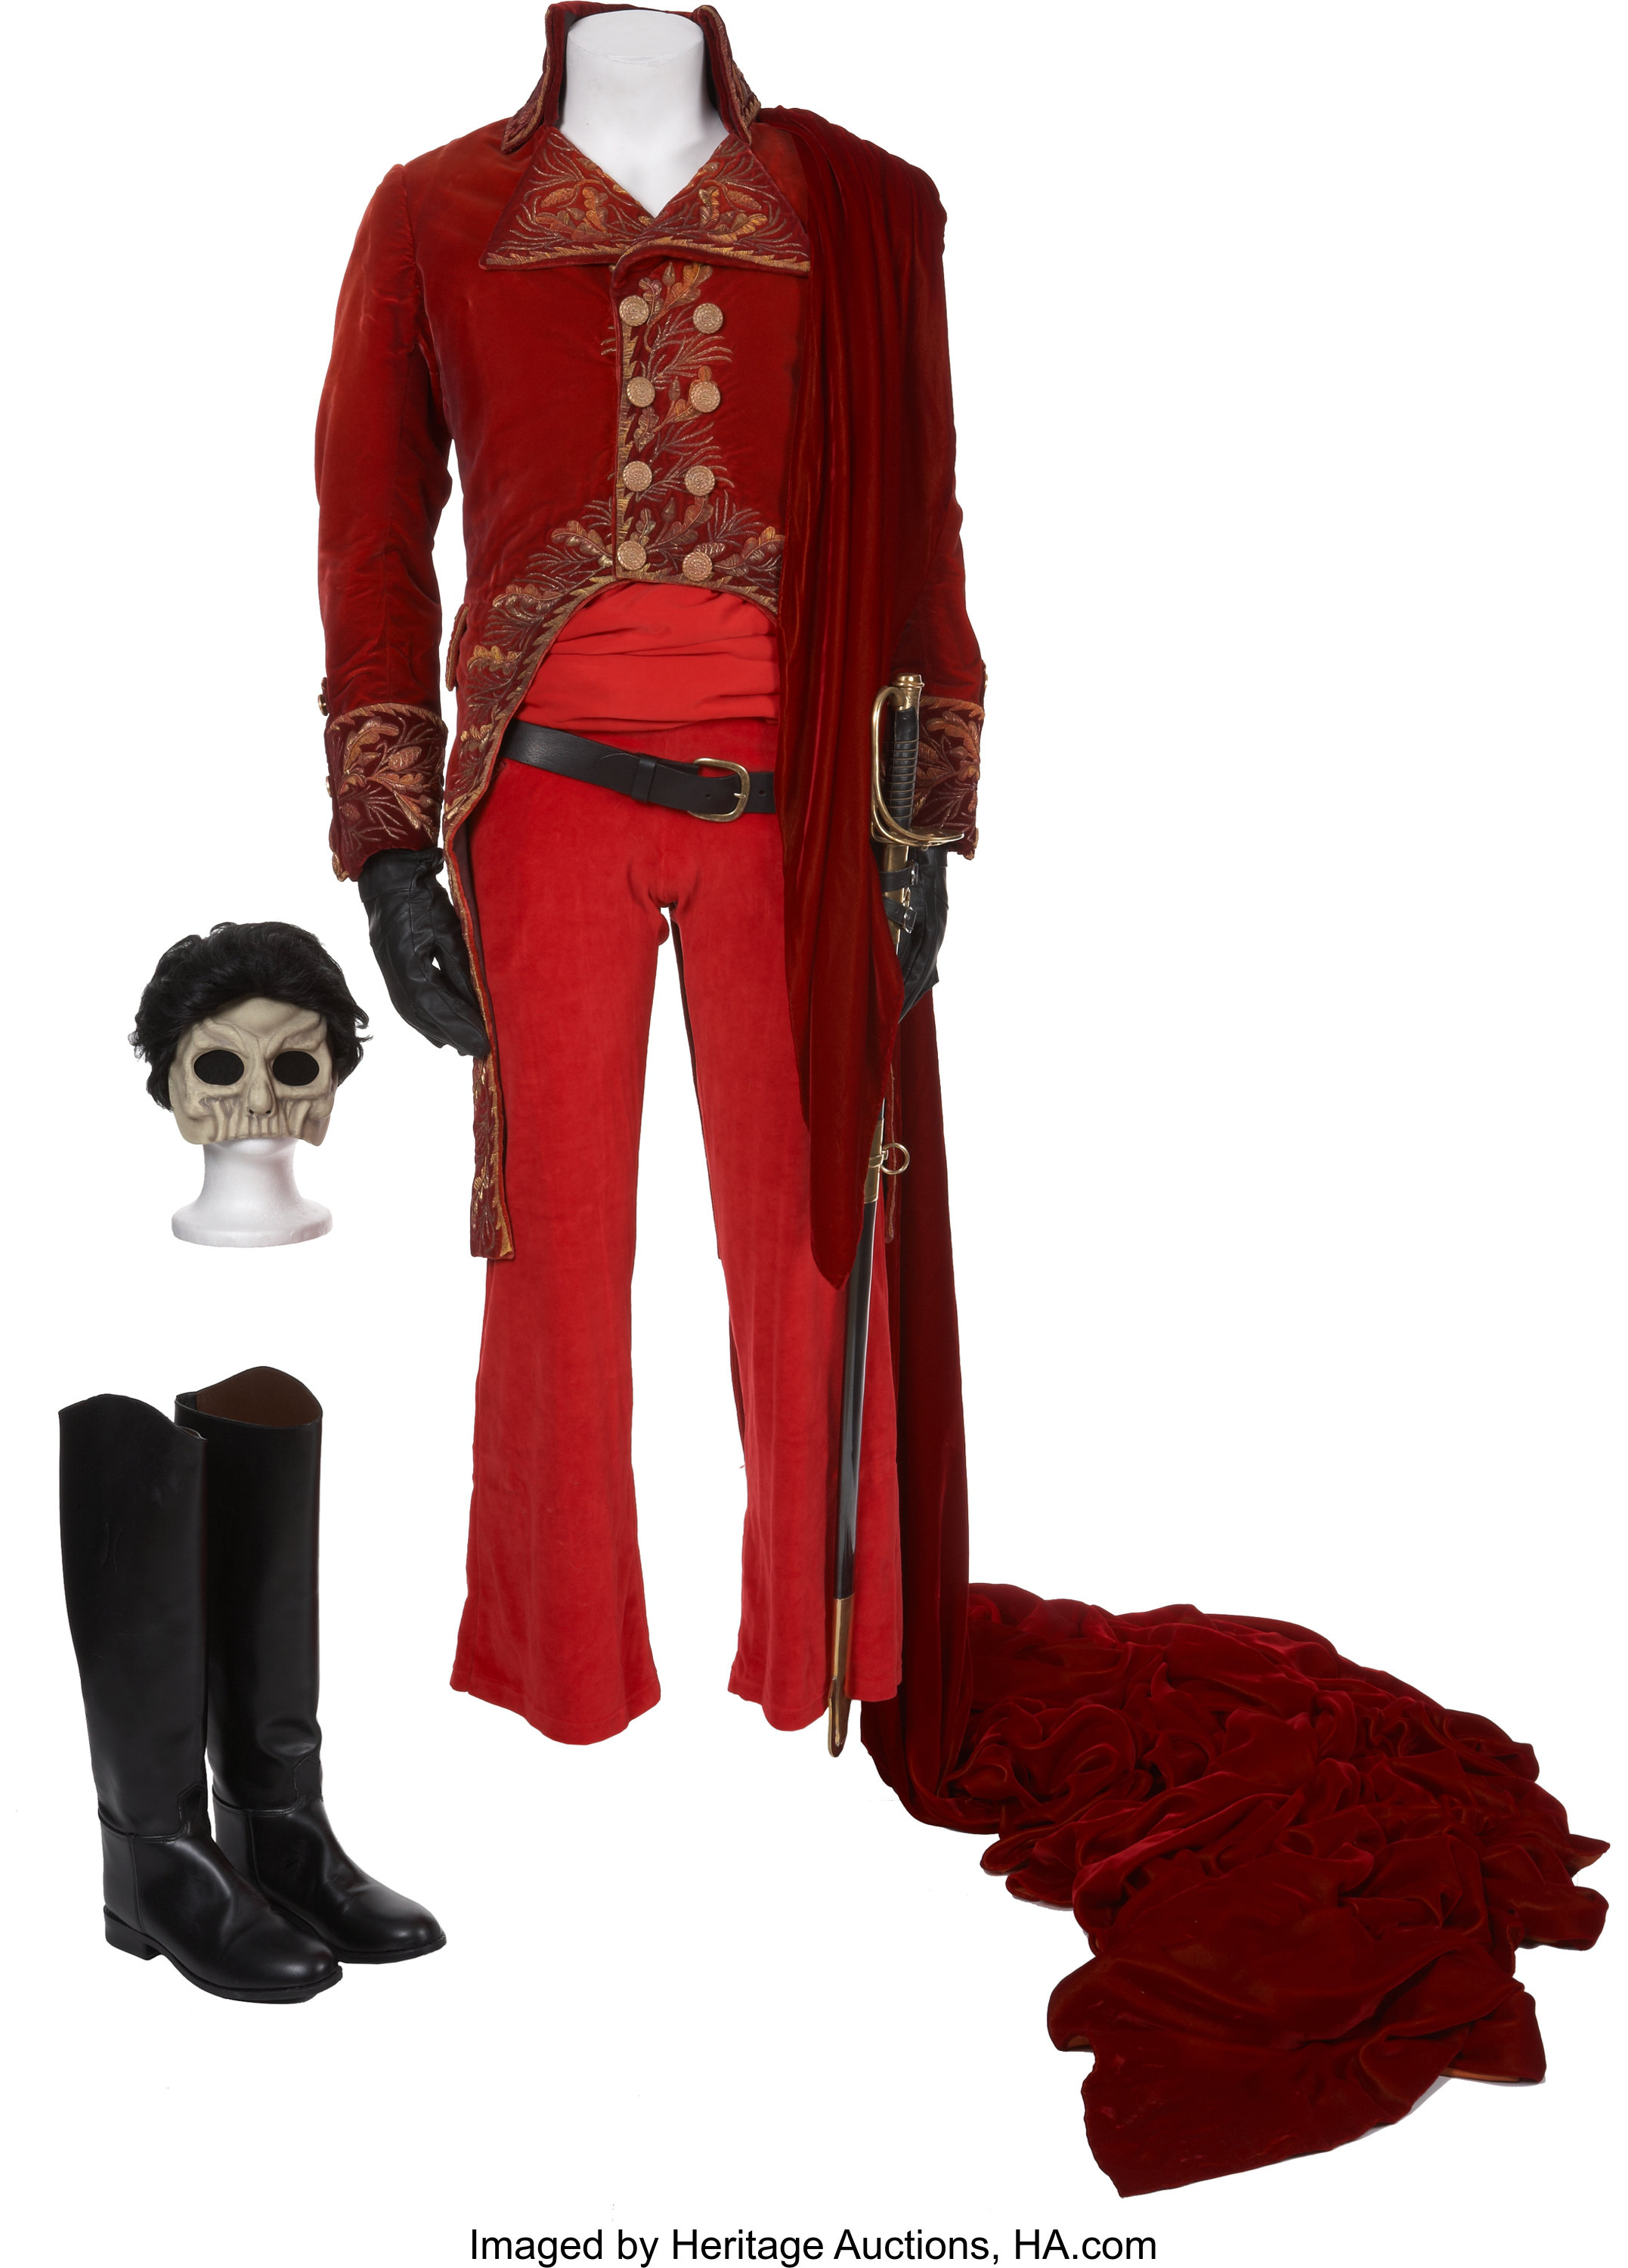 The Phantom Of The Opera Gerard Butler S Red Death Masquerade Lot 49429 Heritage Auctions